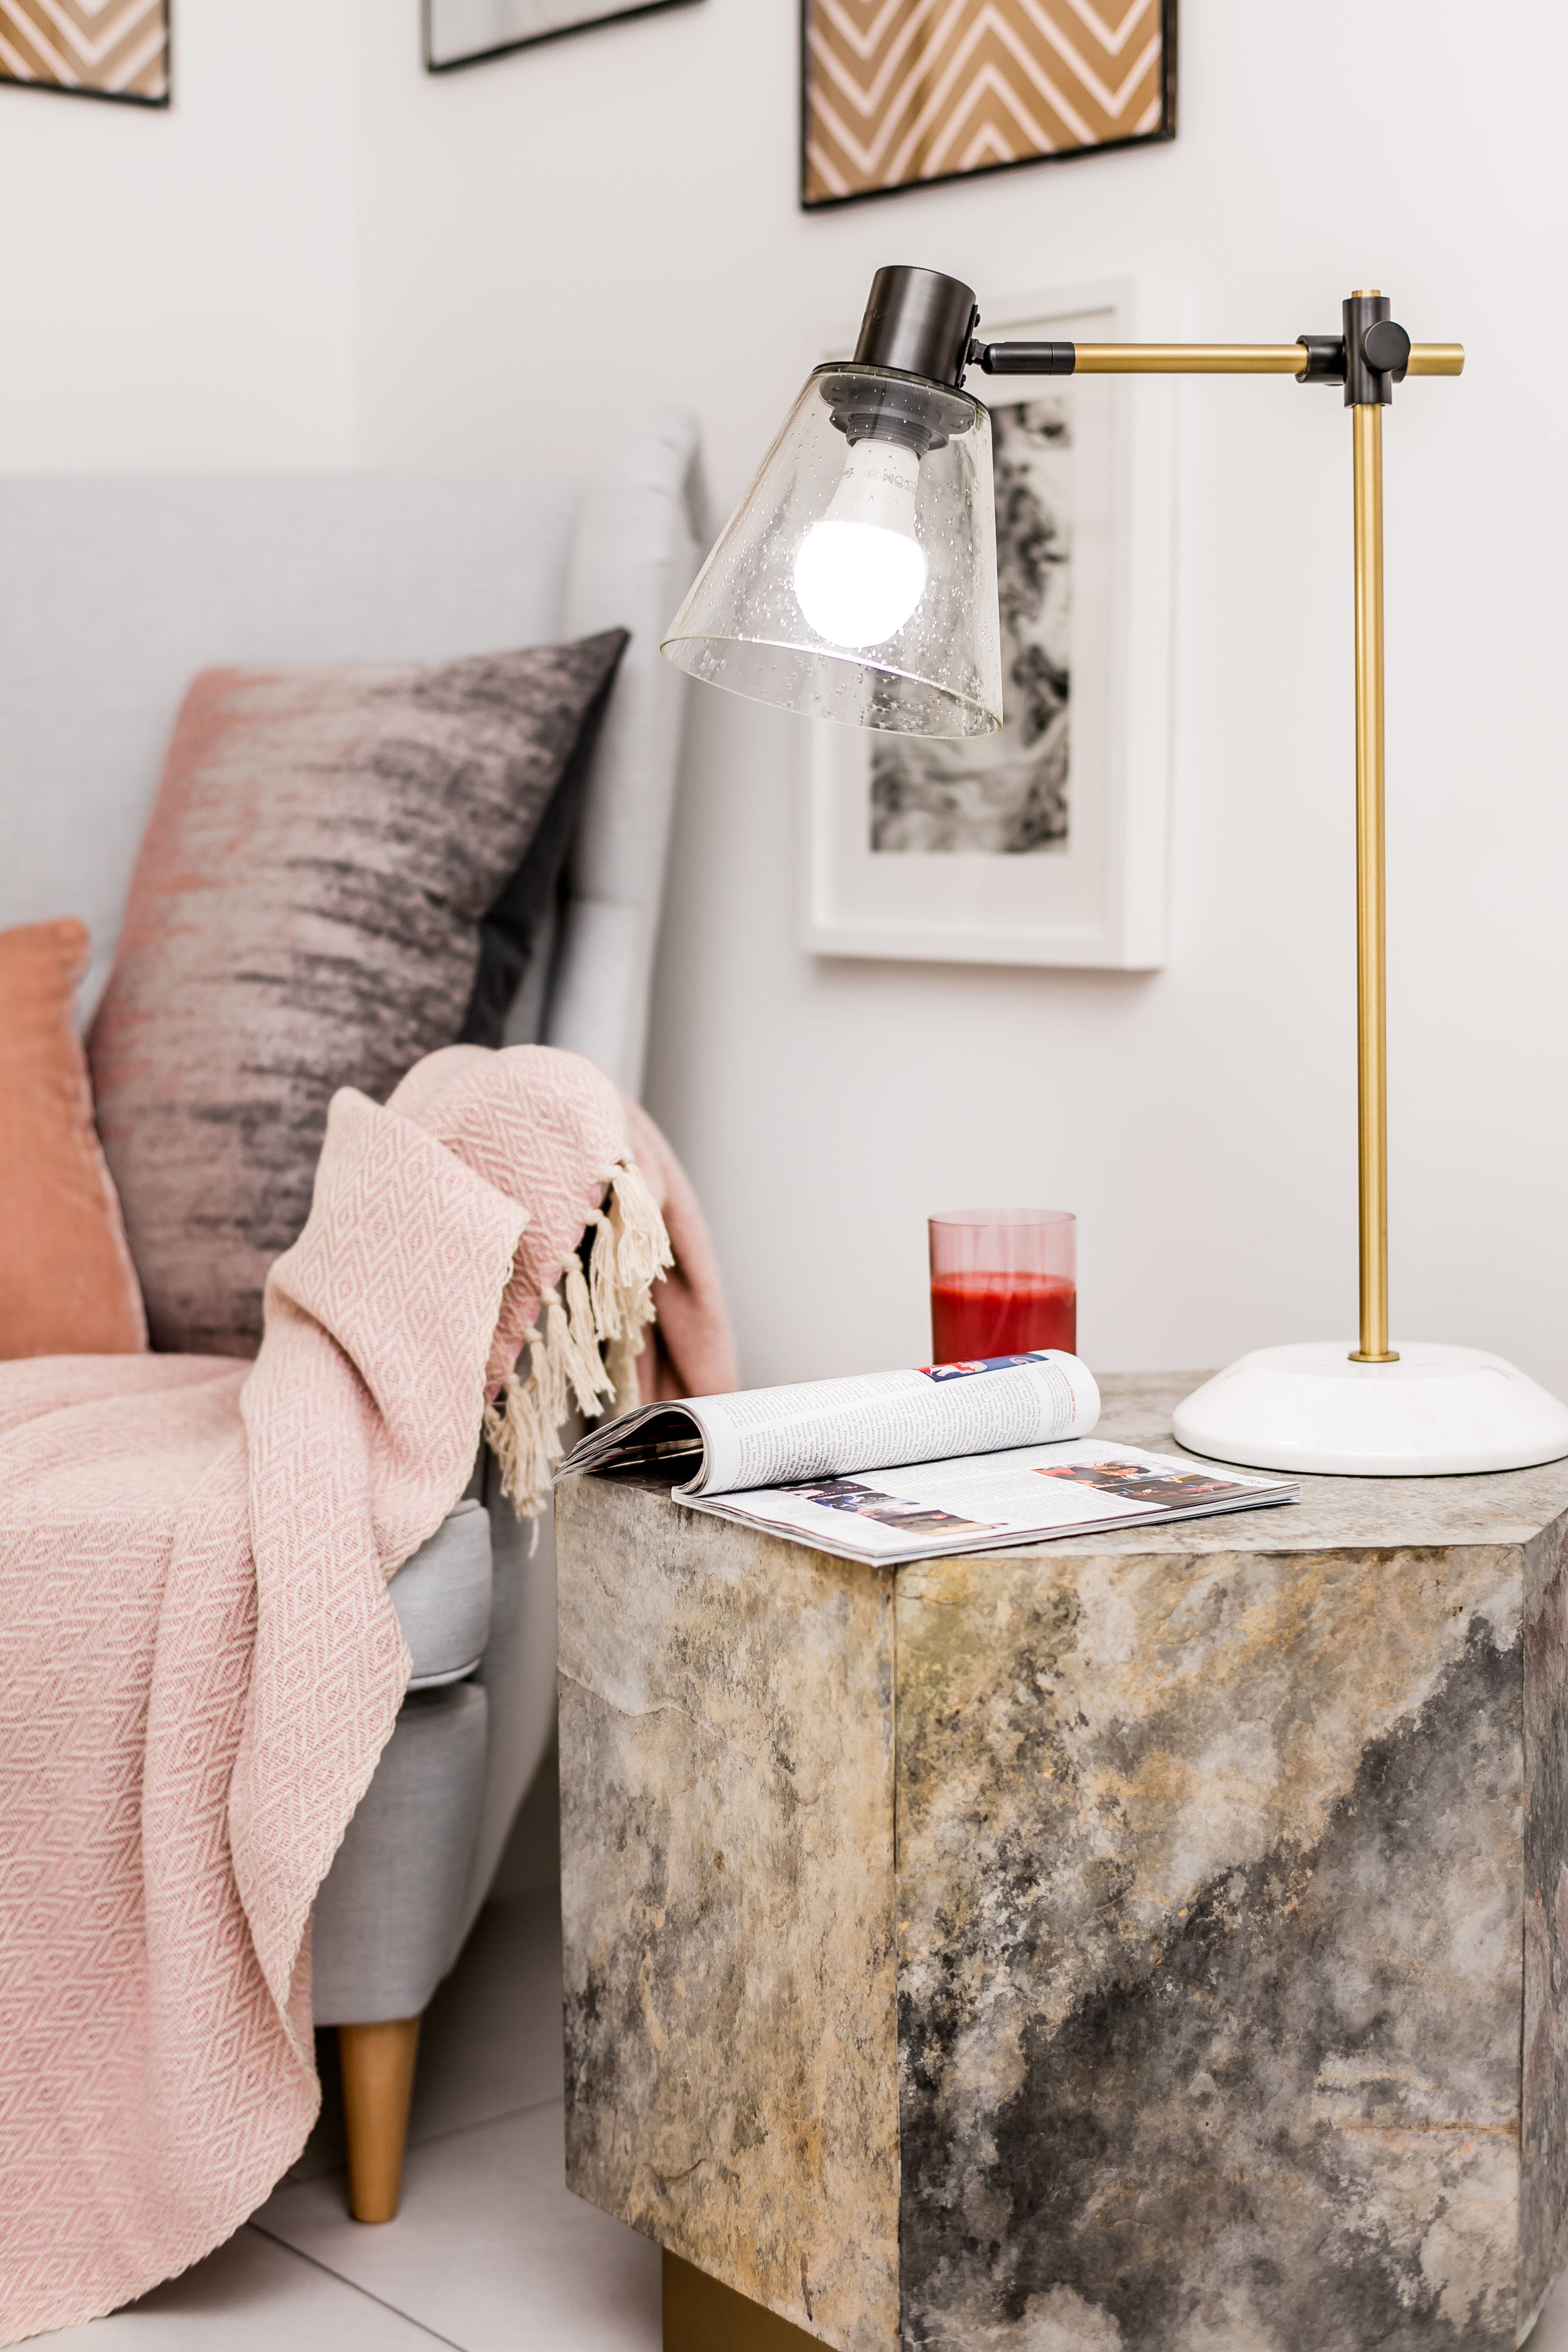 TIP:  Choose a side table lamp which is practical and gives off a good amount of light.